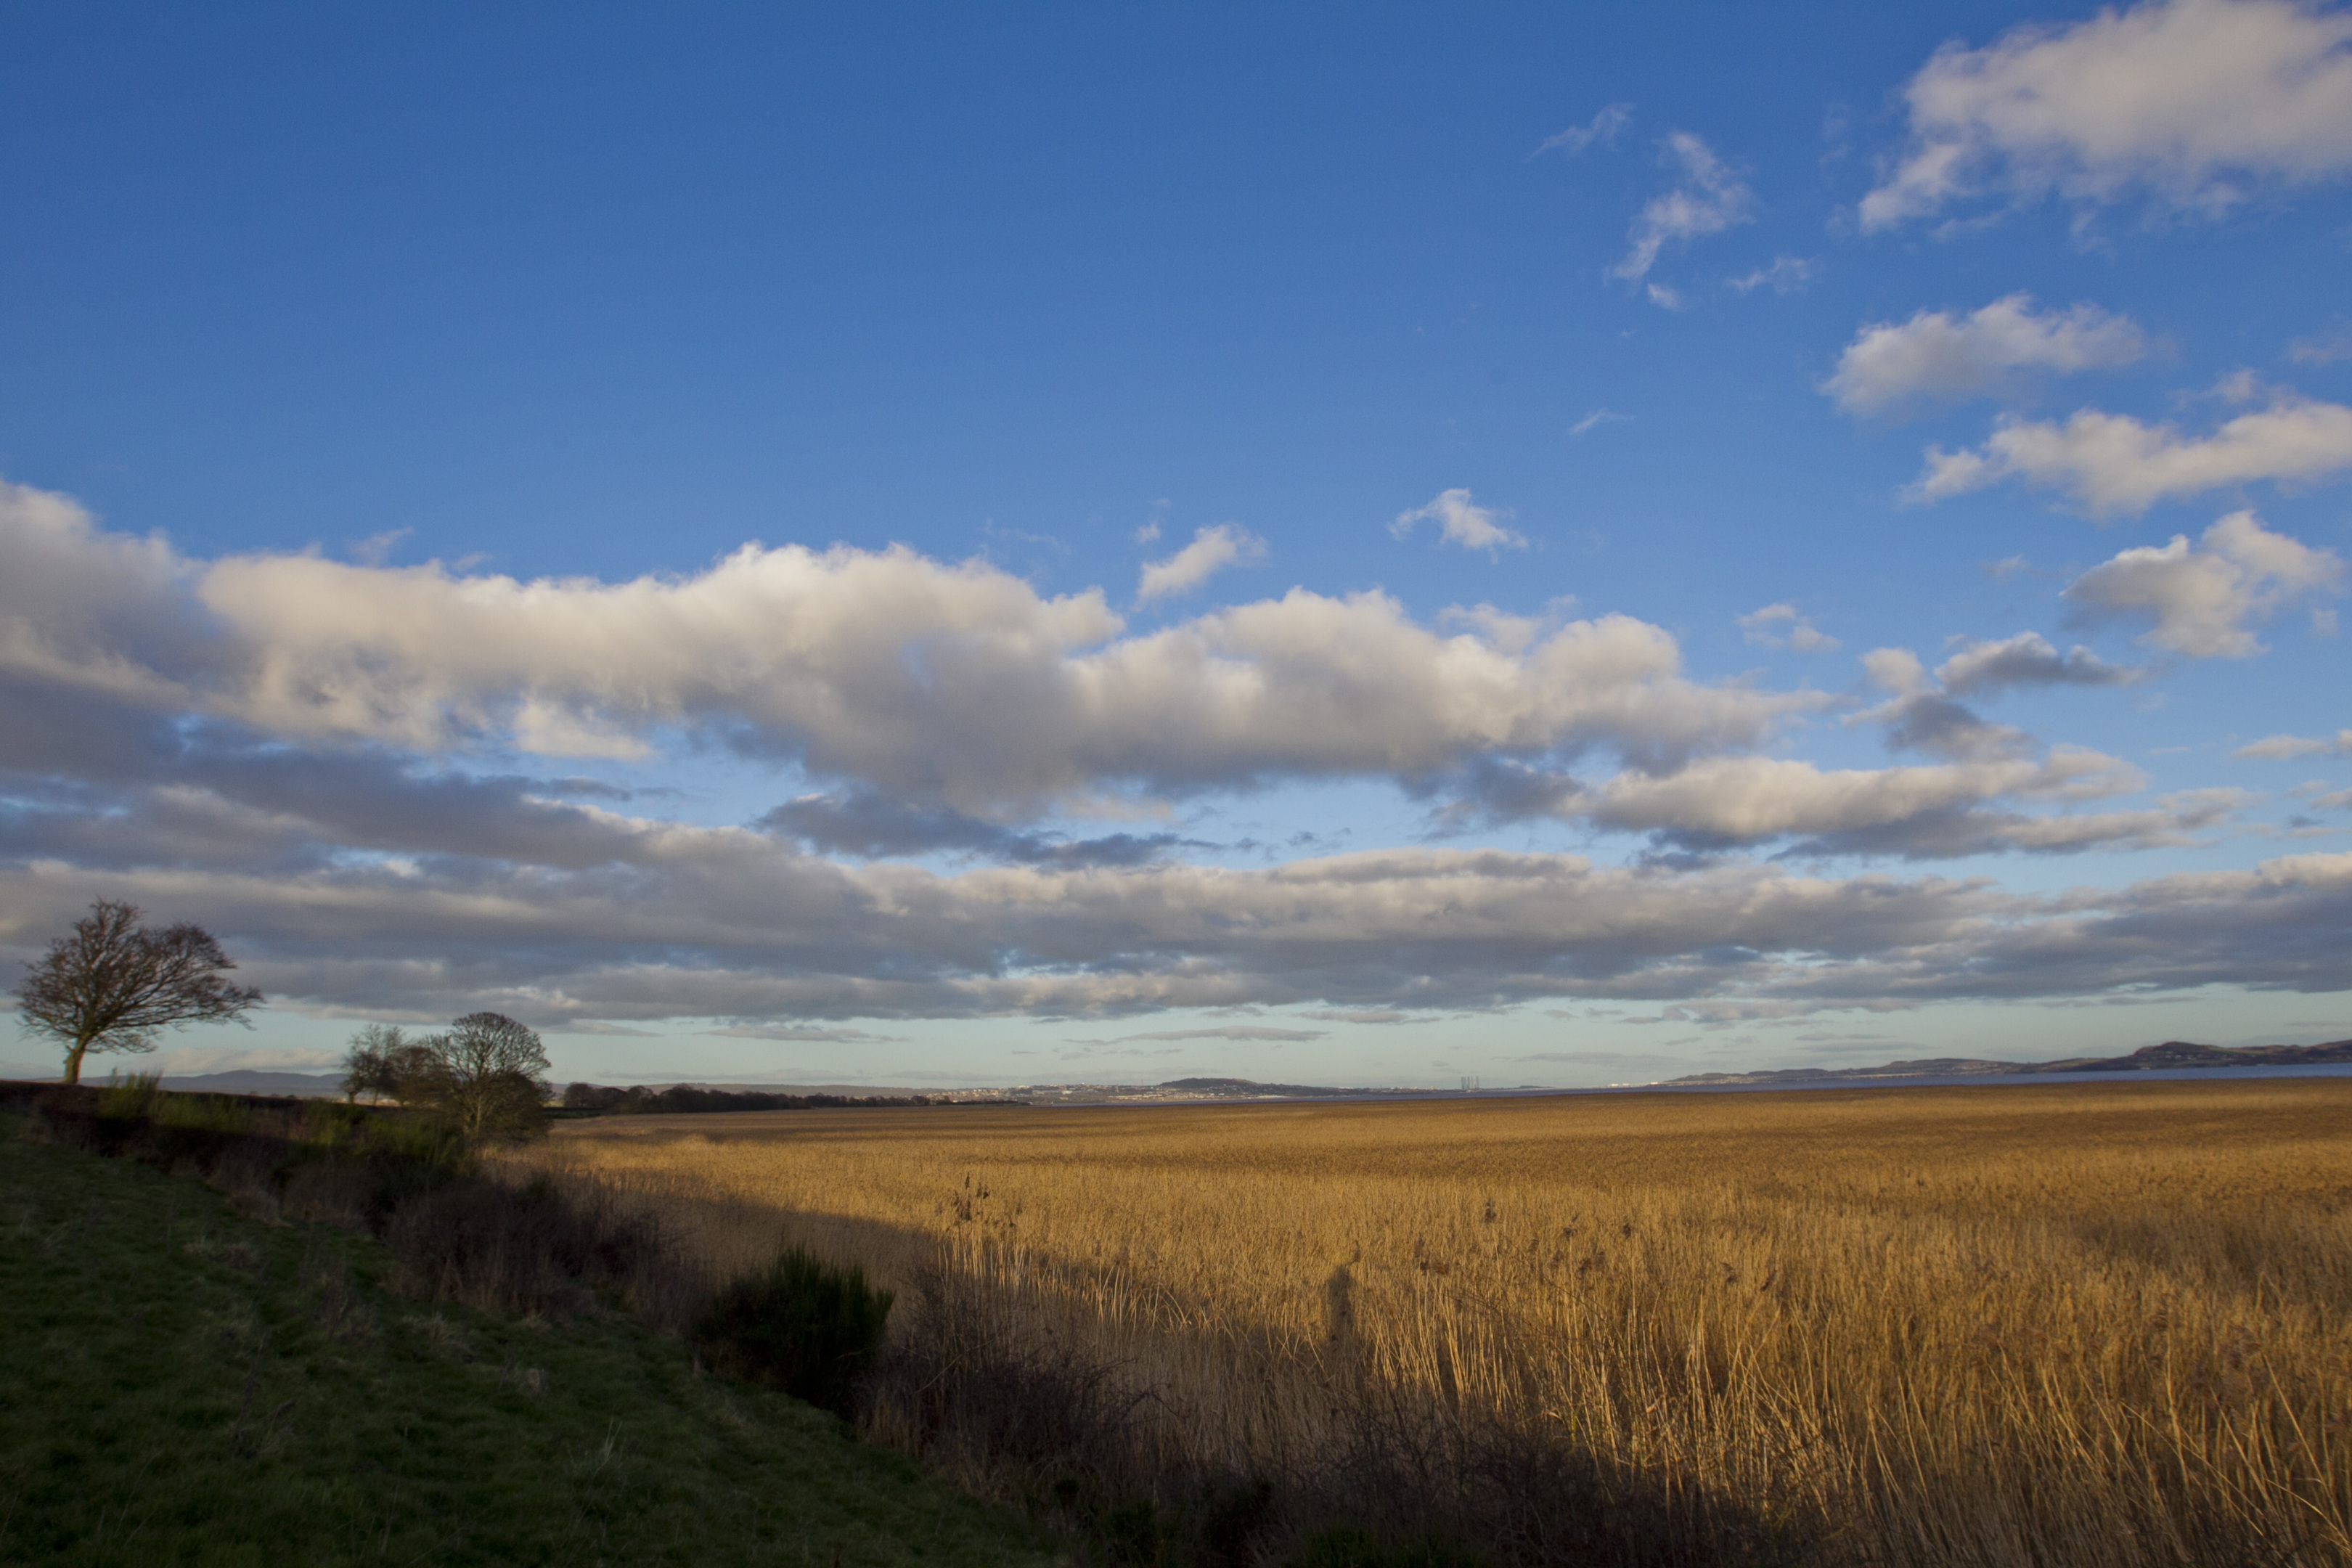 Reed beds on the shore of the River Tay, near Longforgan, looking towards Dundee (Andrew Cawley)